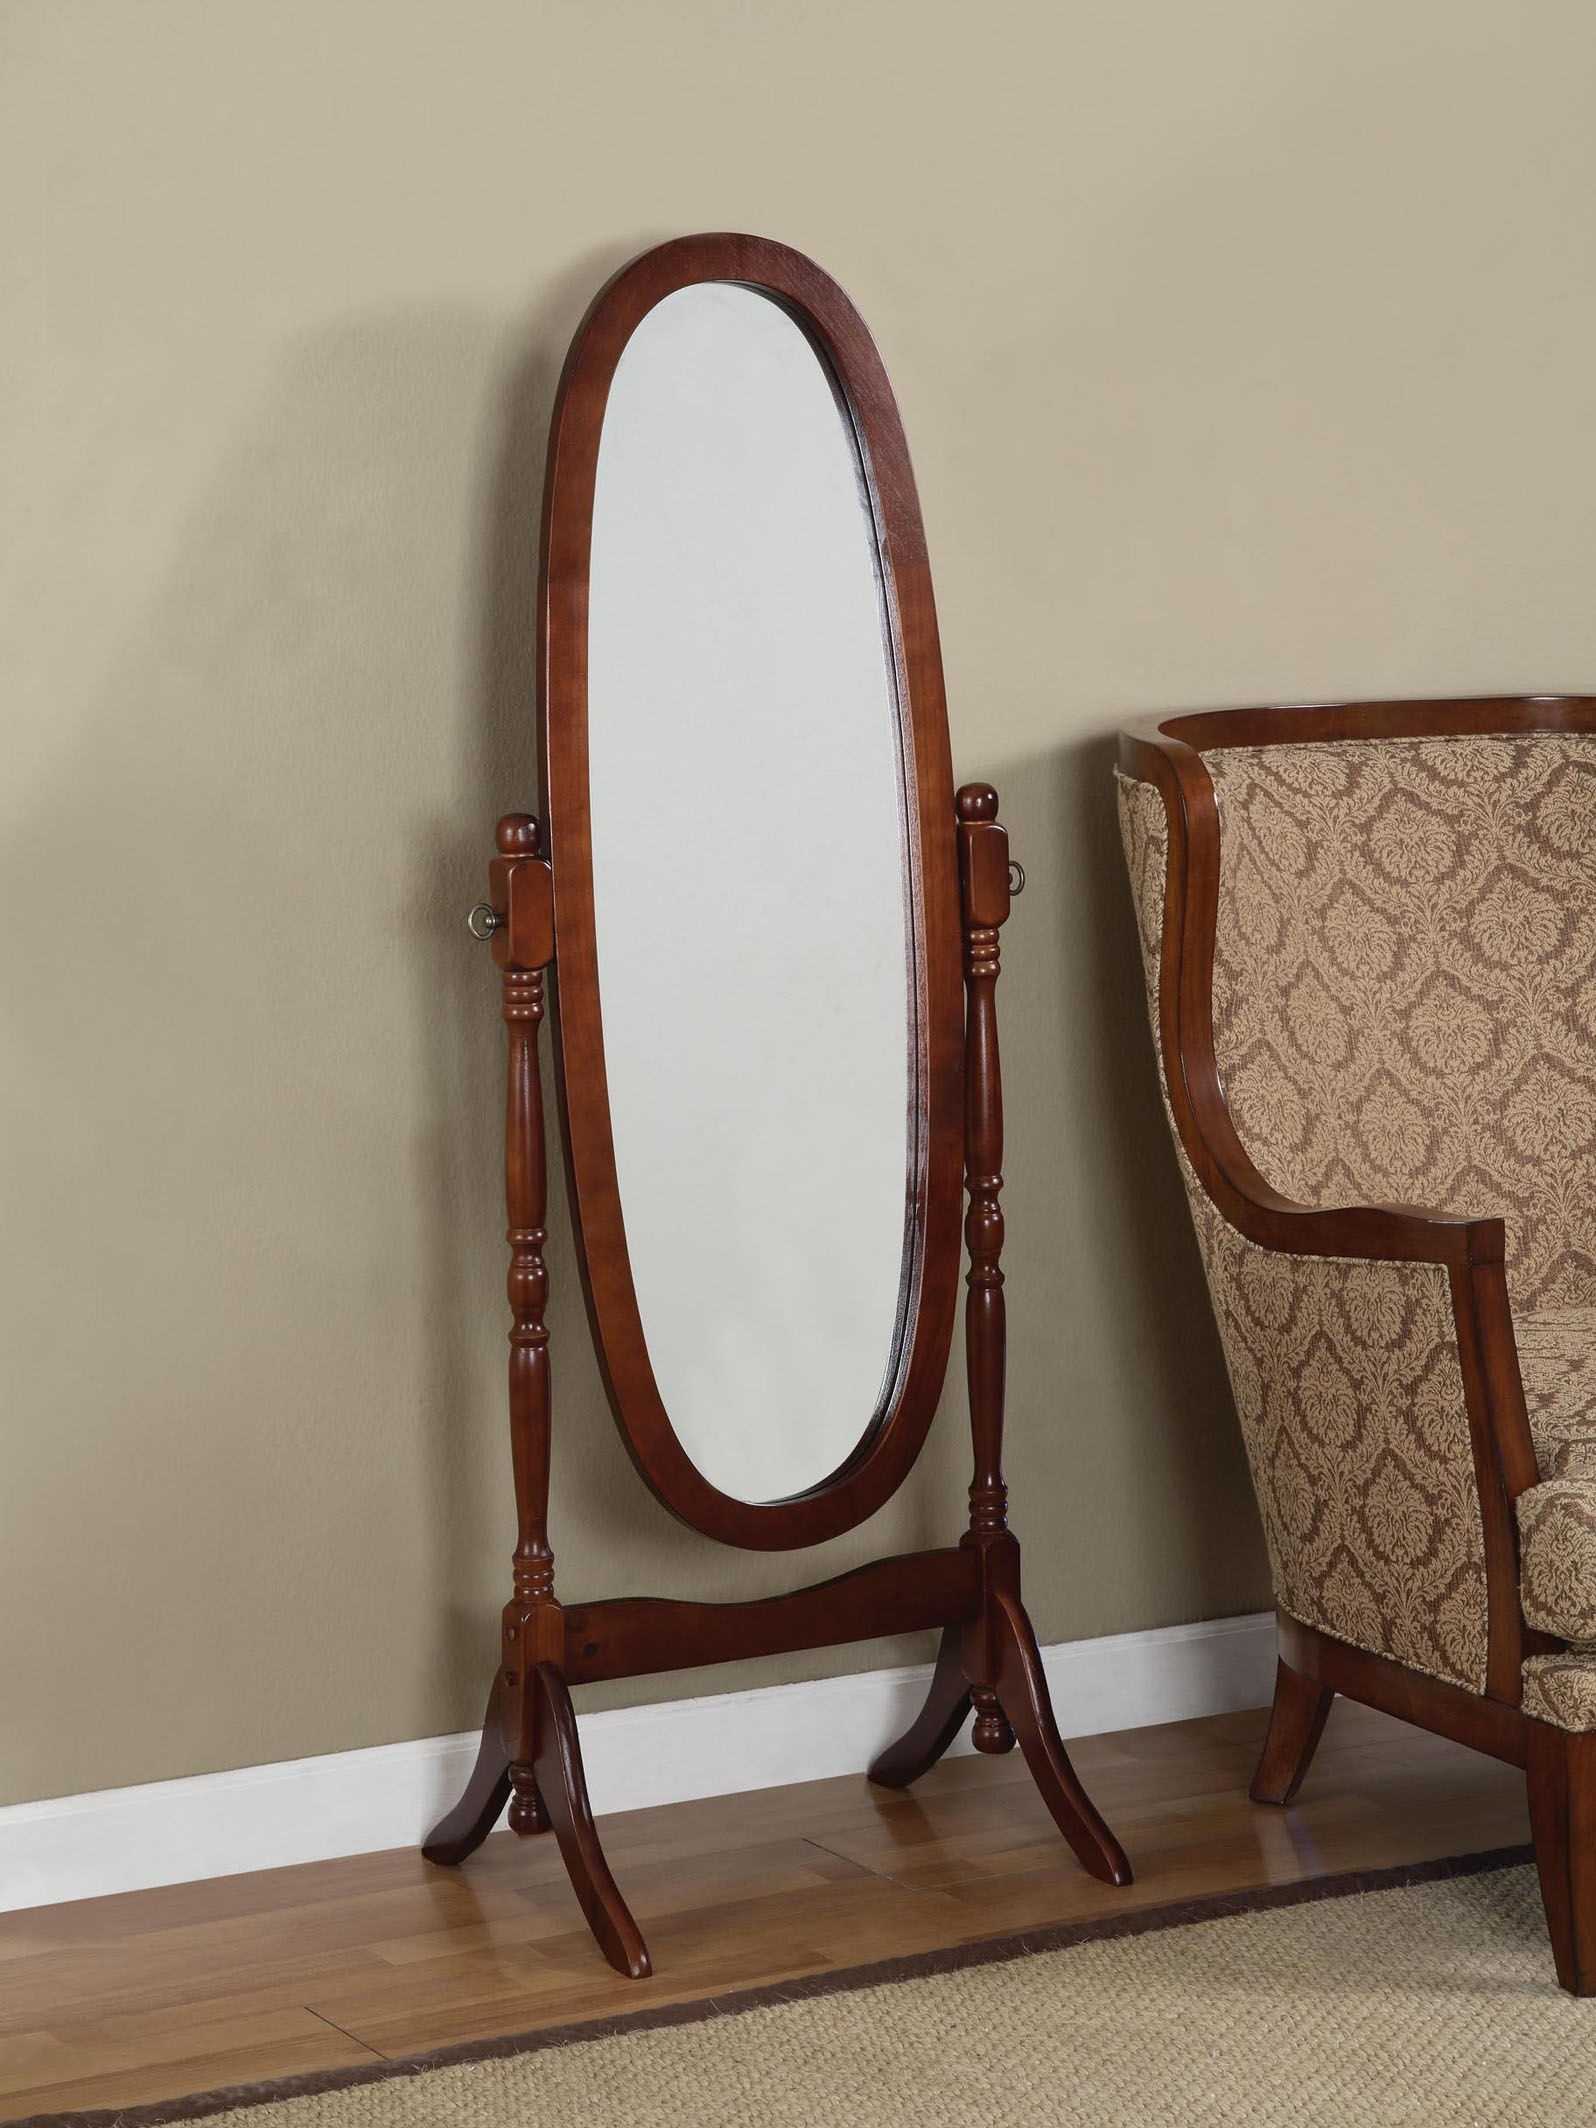 Charming Cheval Mirror Jewelry Armoire Ideas Full Length Swivel With Cheval Freestanding Mirror (Image 7 of 15)